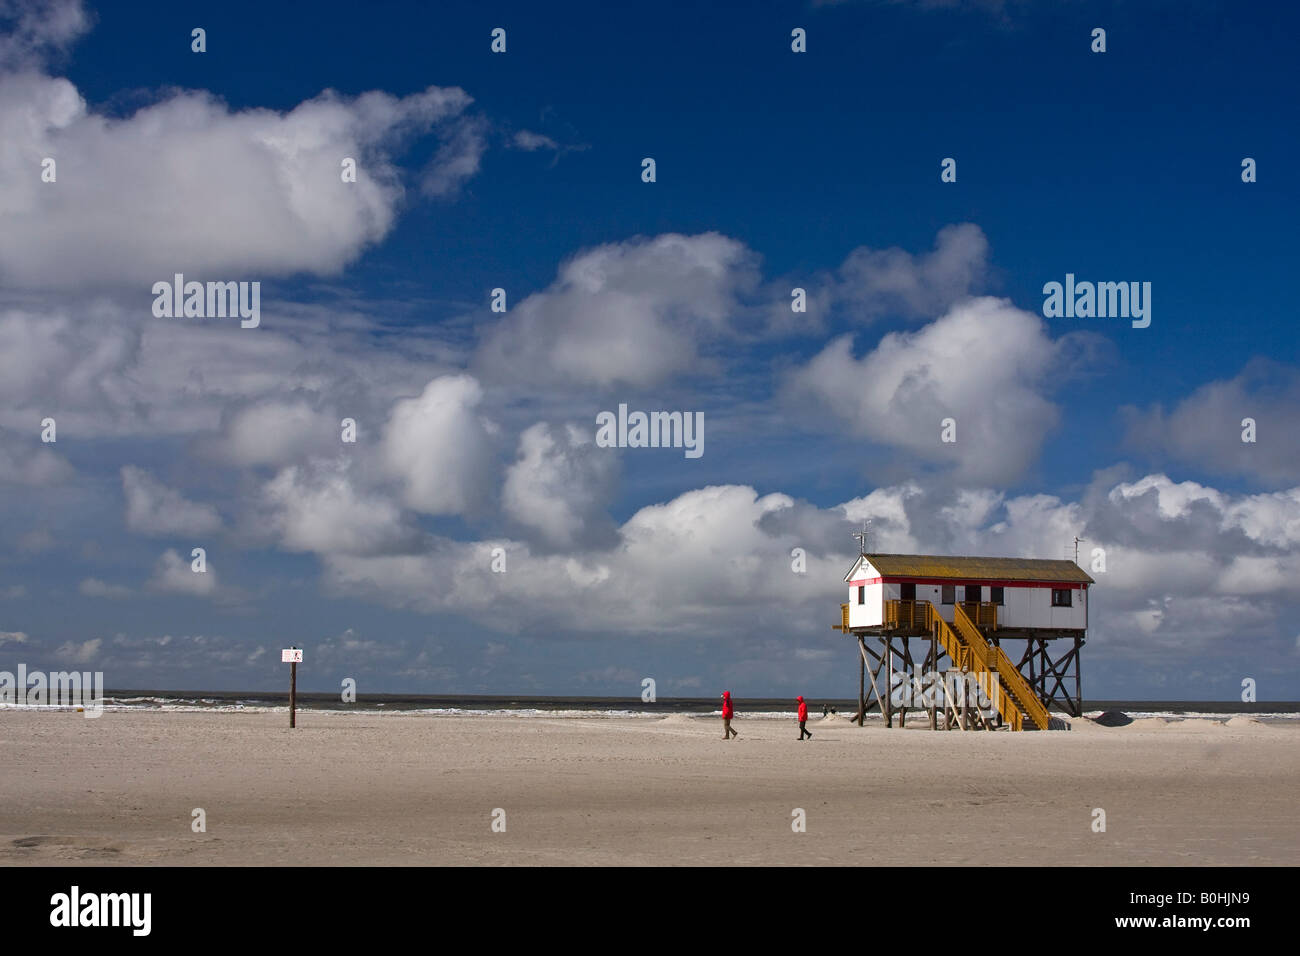 People walking past a house on stilts on the beach at the seaside resort of St. Peter Ording, North Sea coast, North Stock Photo